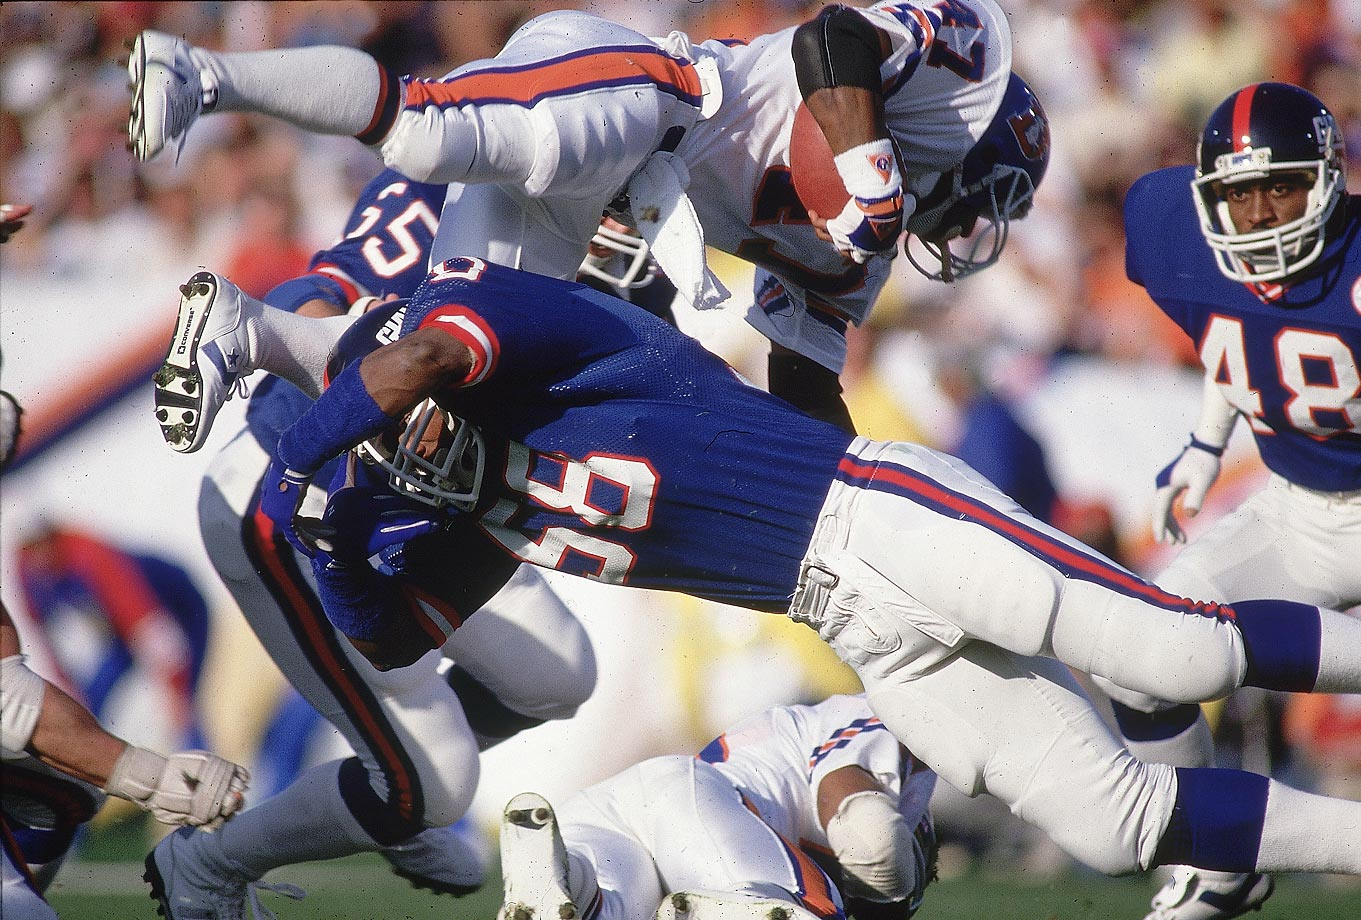 Carl Banks and the New York Giants' Blue Wrecking Crew defense held Gerald Wilhite and the Broncos to 10 second-half points on their way to a 39-20 victory -- the Giants' first ever in a Super Bowl.